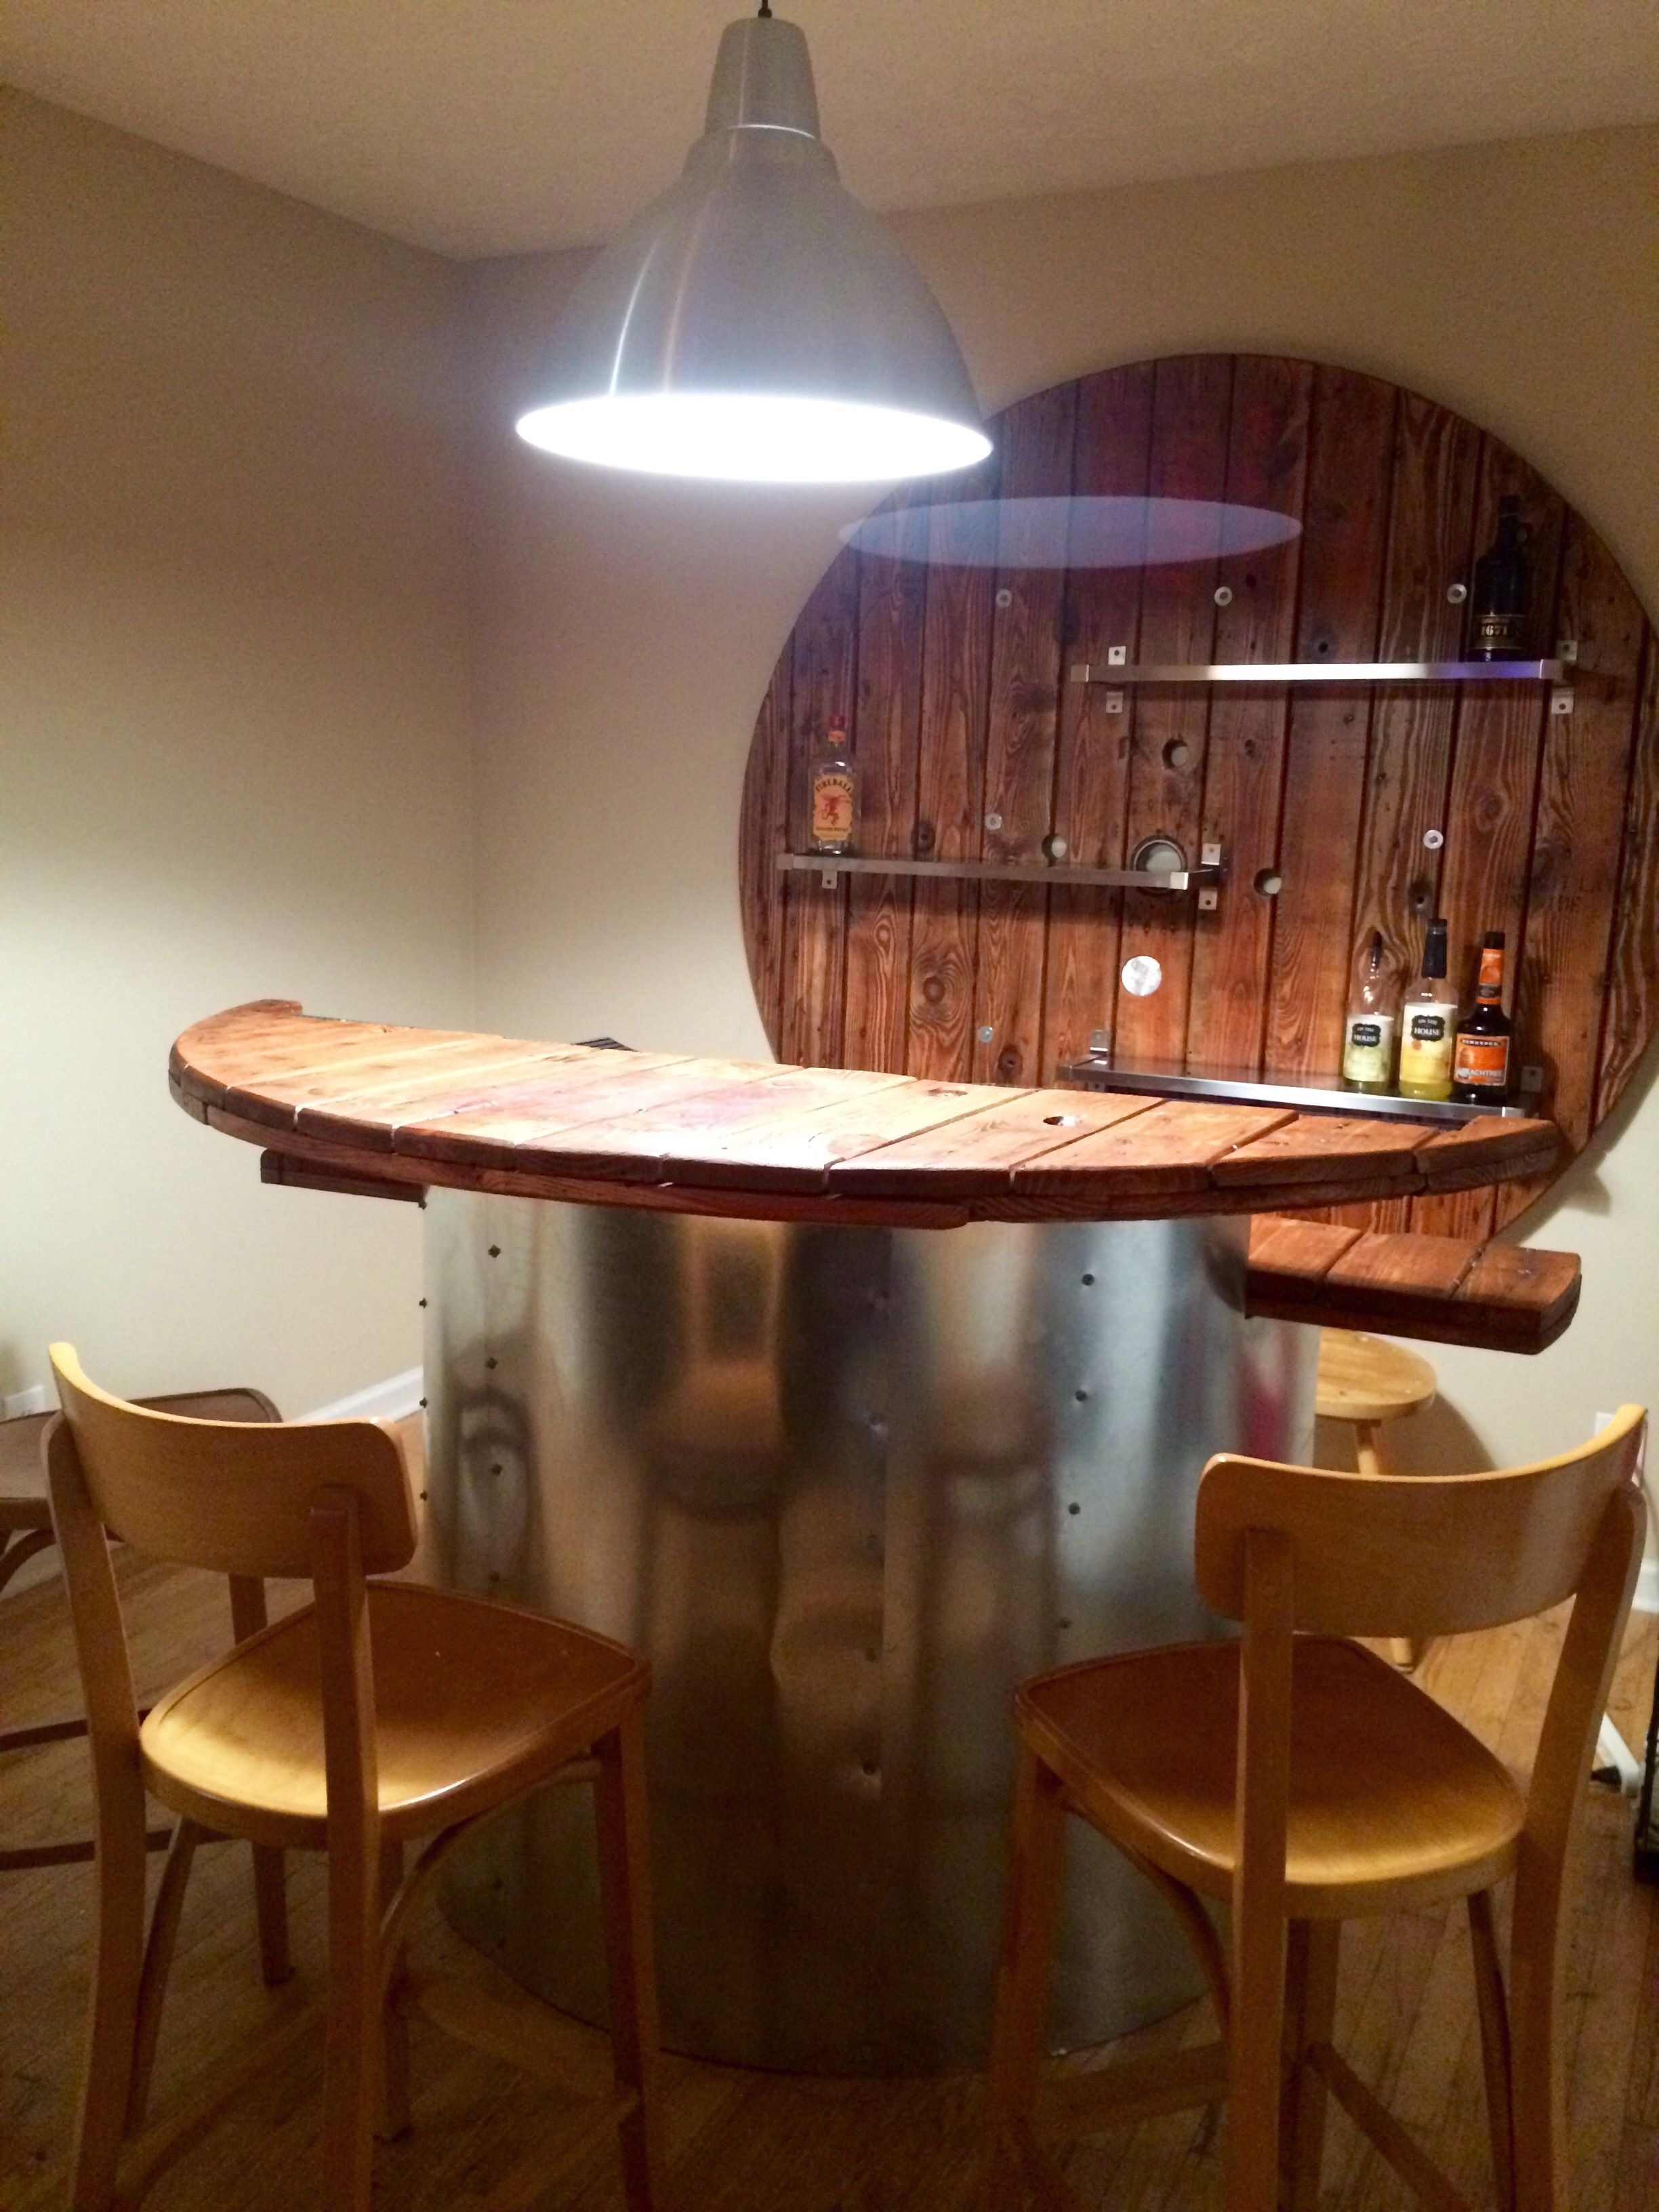 Home Bar from Wooden Electical Spool | Kabeltrommel, Kabel und Schaukeln